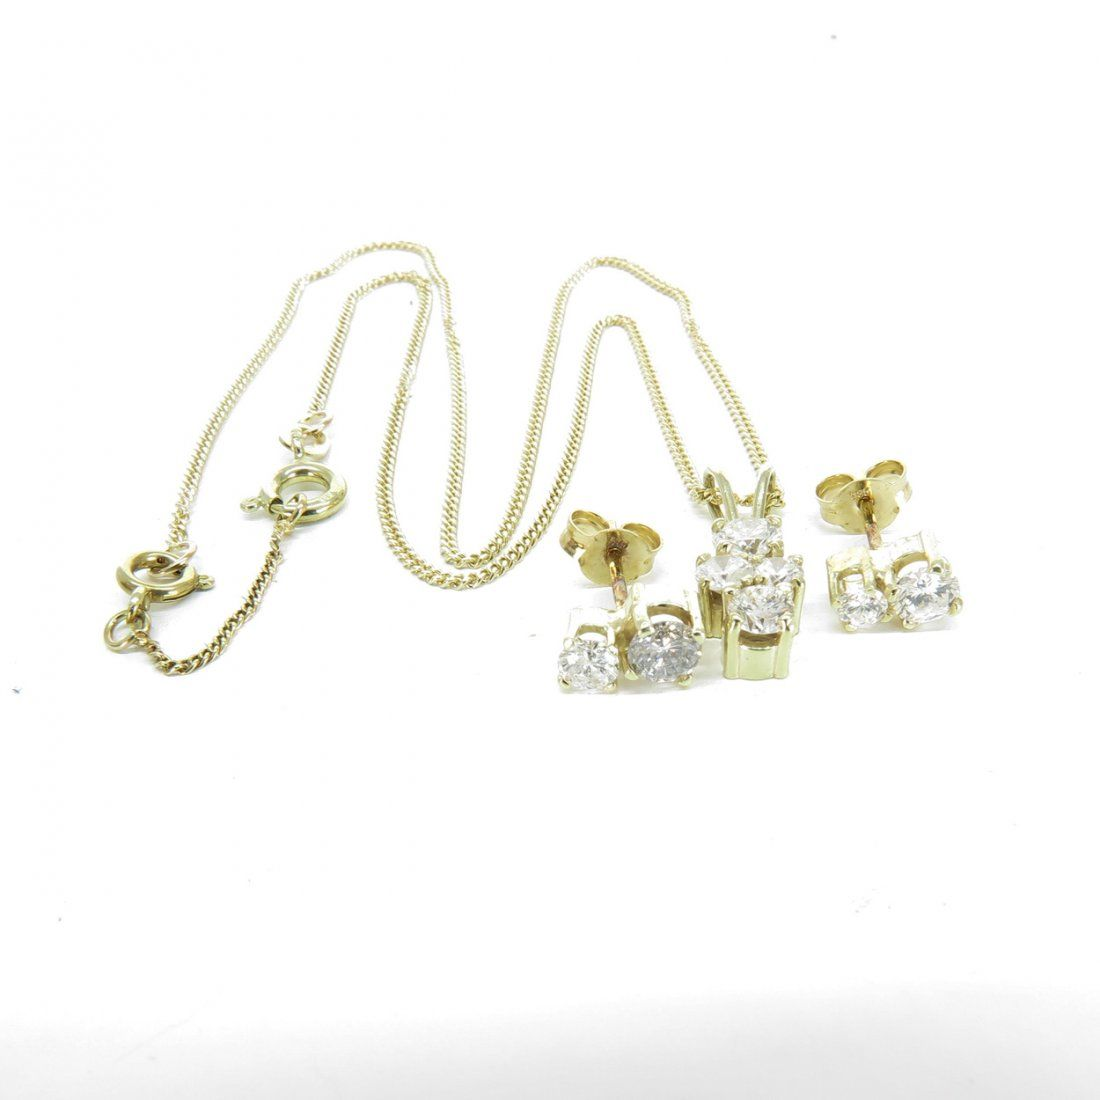 14KG Diamond Necklace and Earrings 1.7 CTW